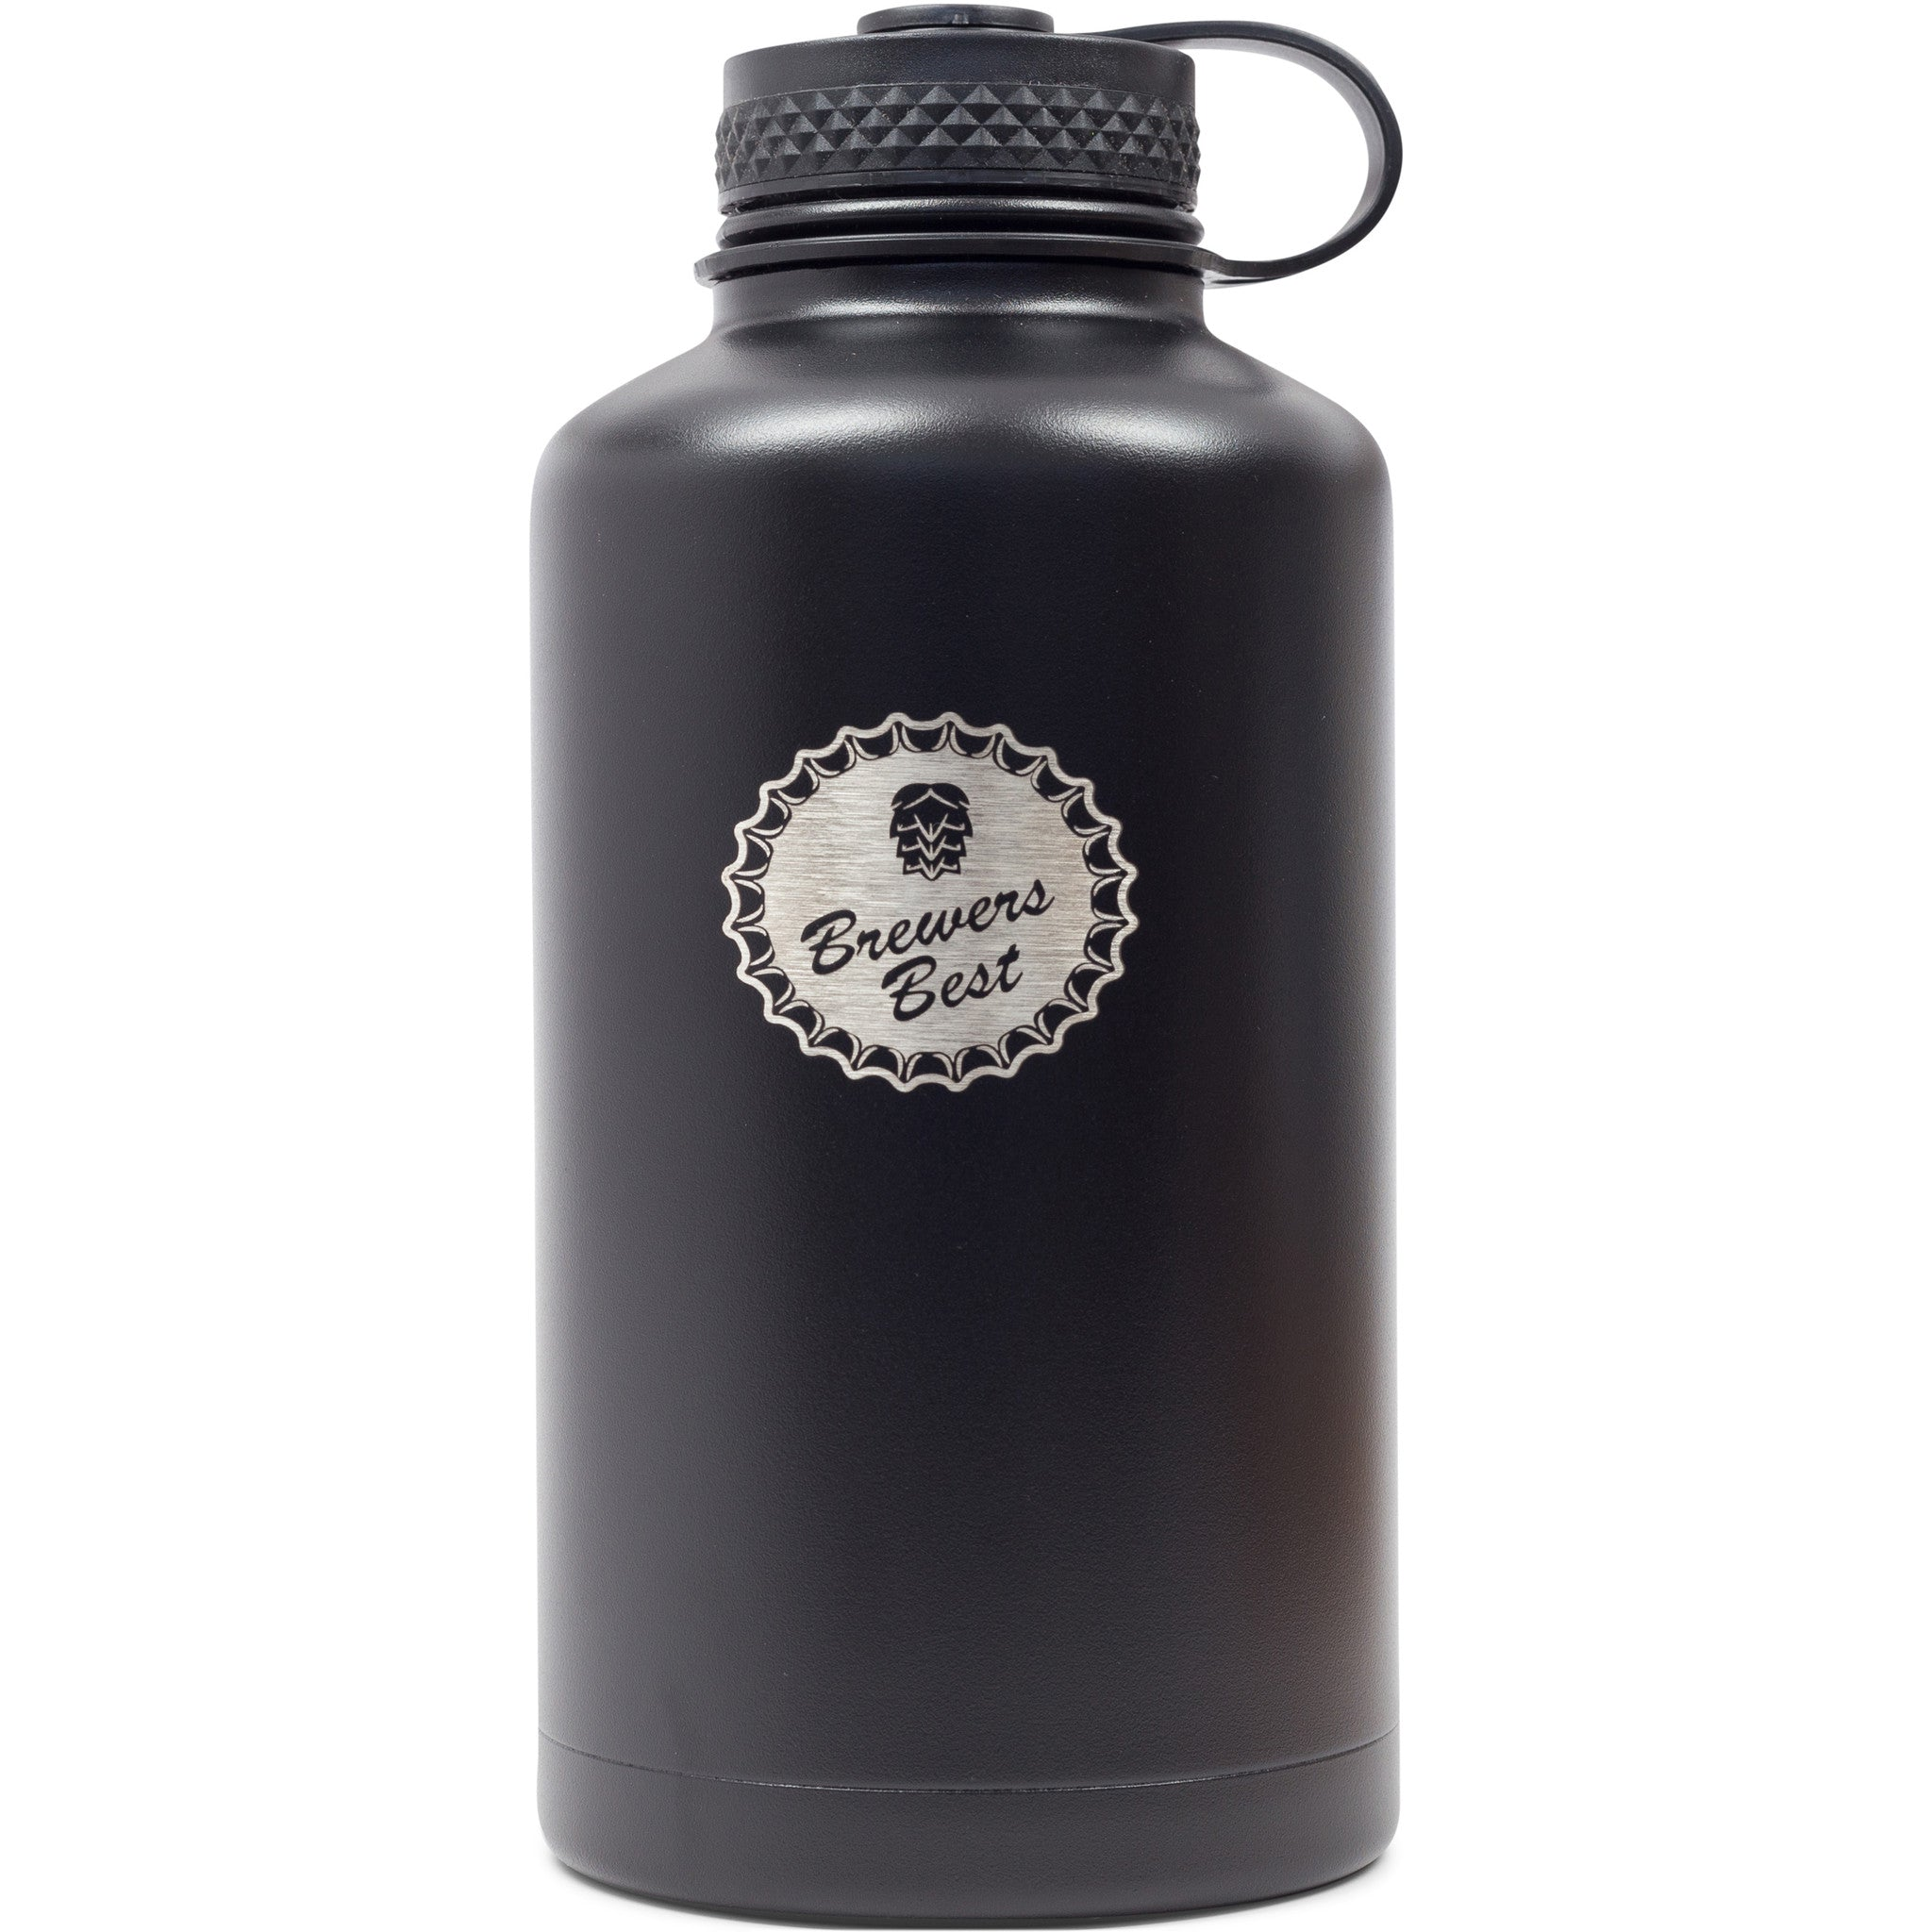 Beer Growler, Double-Wall Vacuum Insulation, Stainless Steel, 64oz